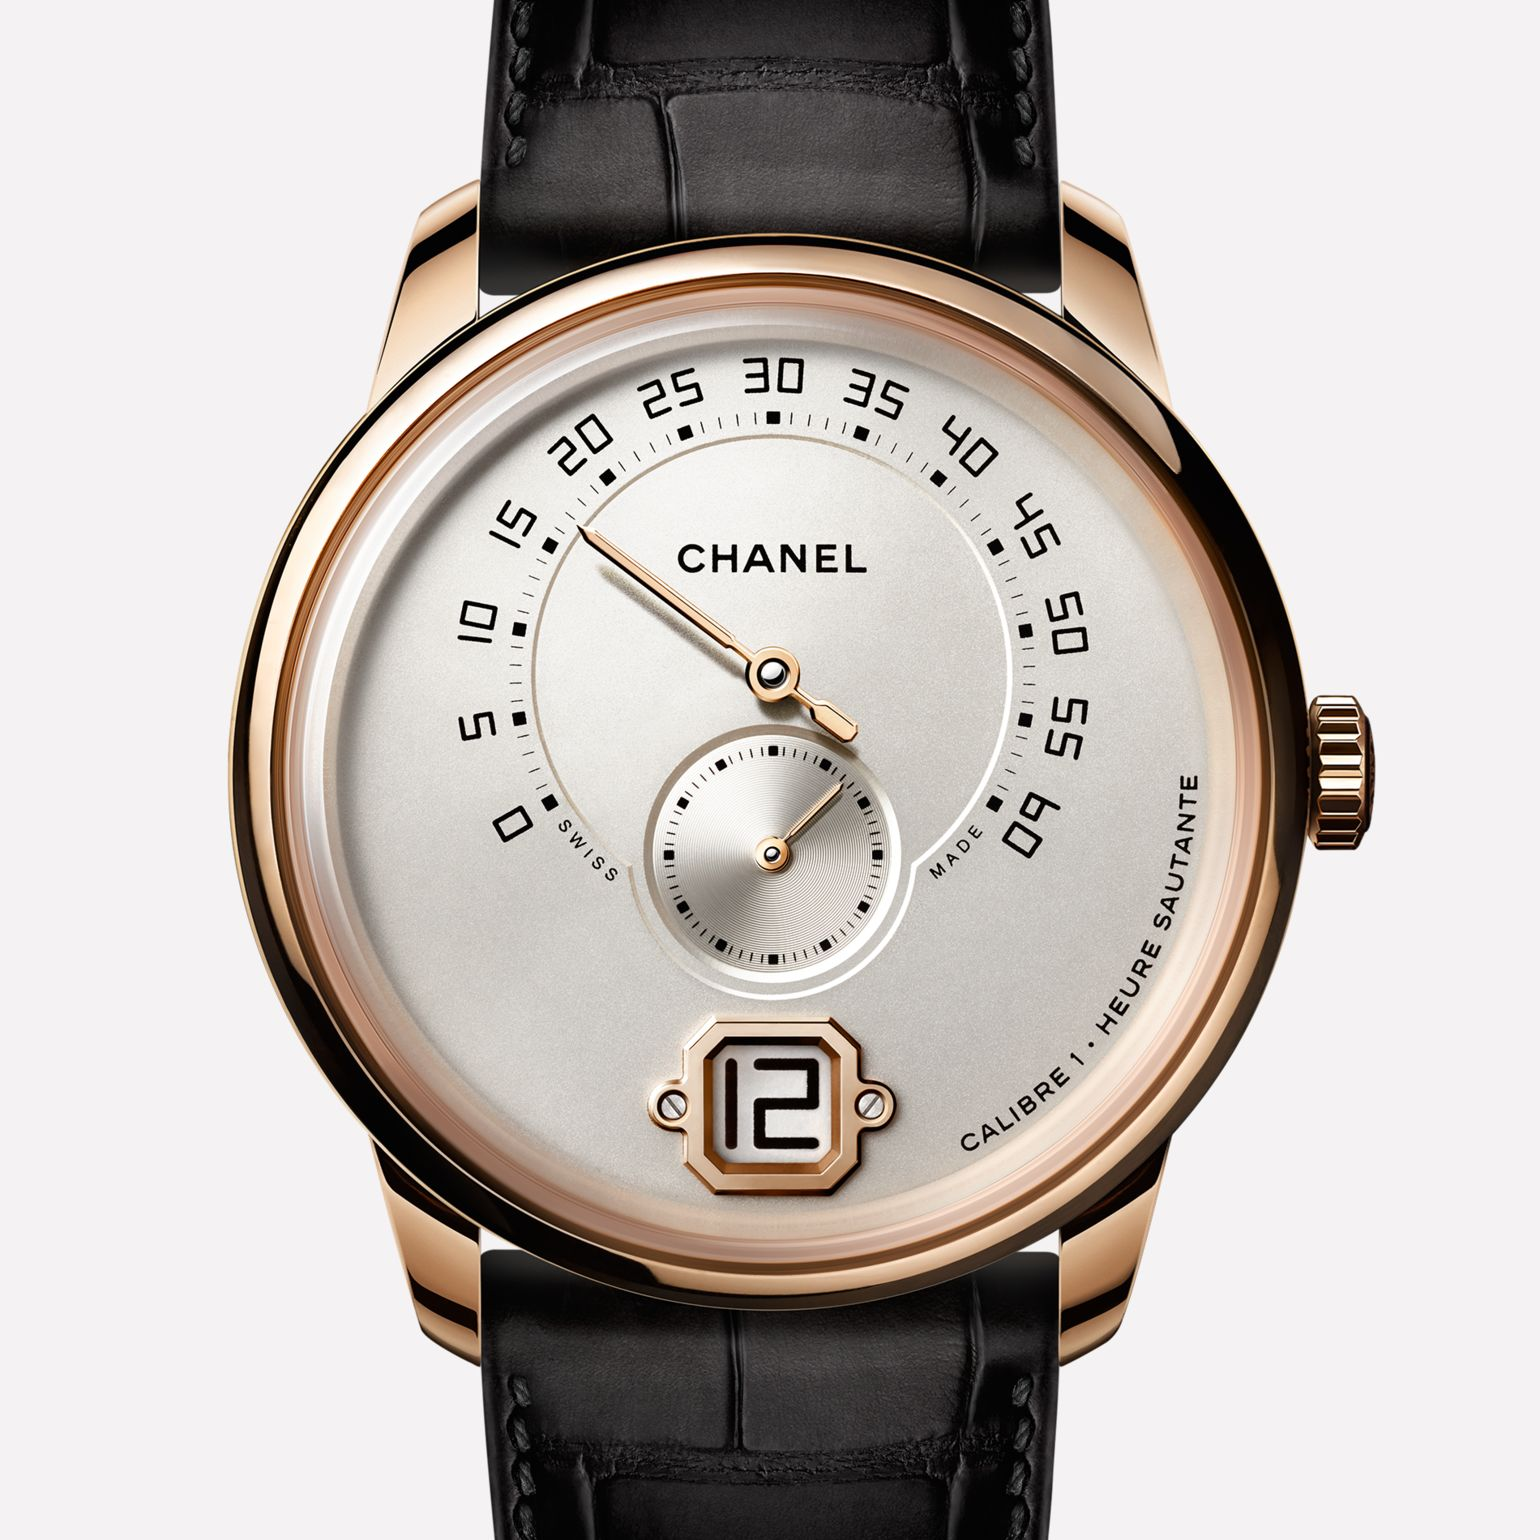 Monsieur de CHANEL Watch BEIGE GOLD, ivory dial with jumping hour, a retrograde minute indication at 240°, and small second counter